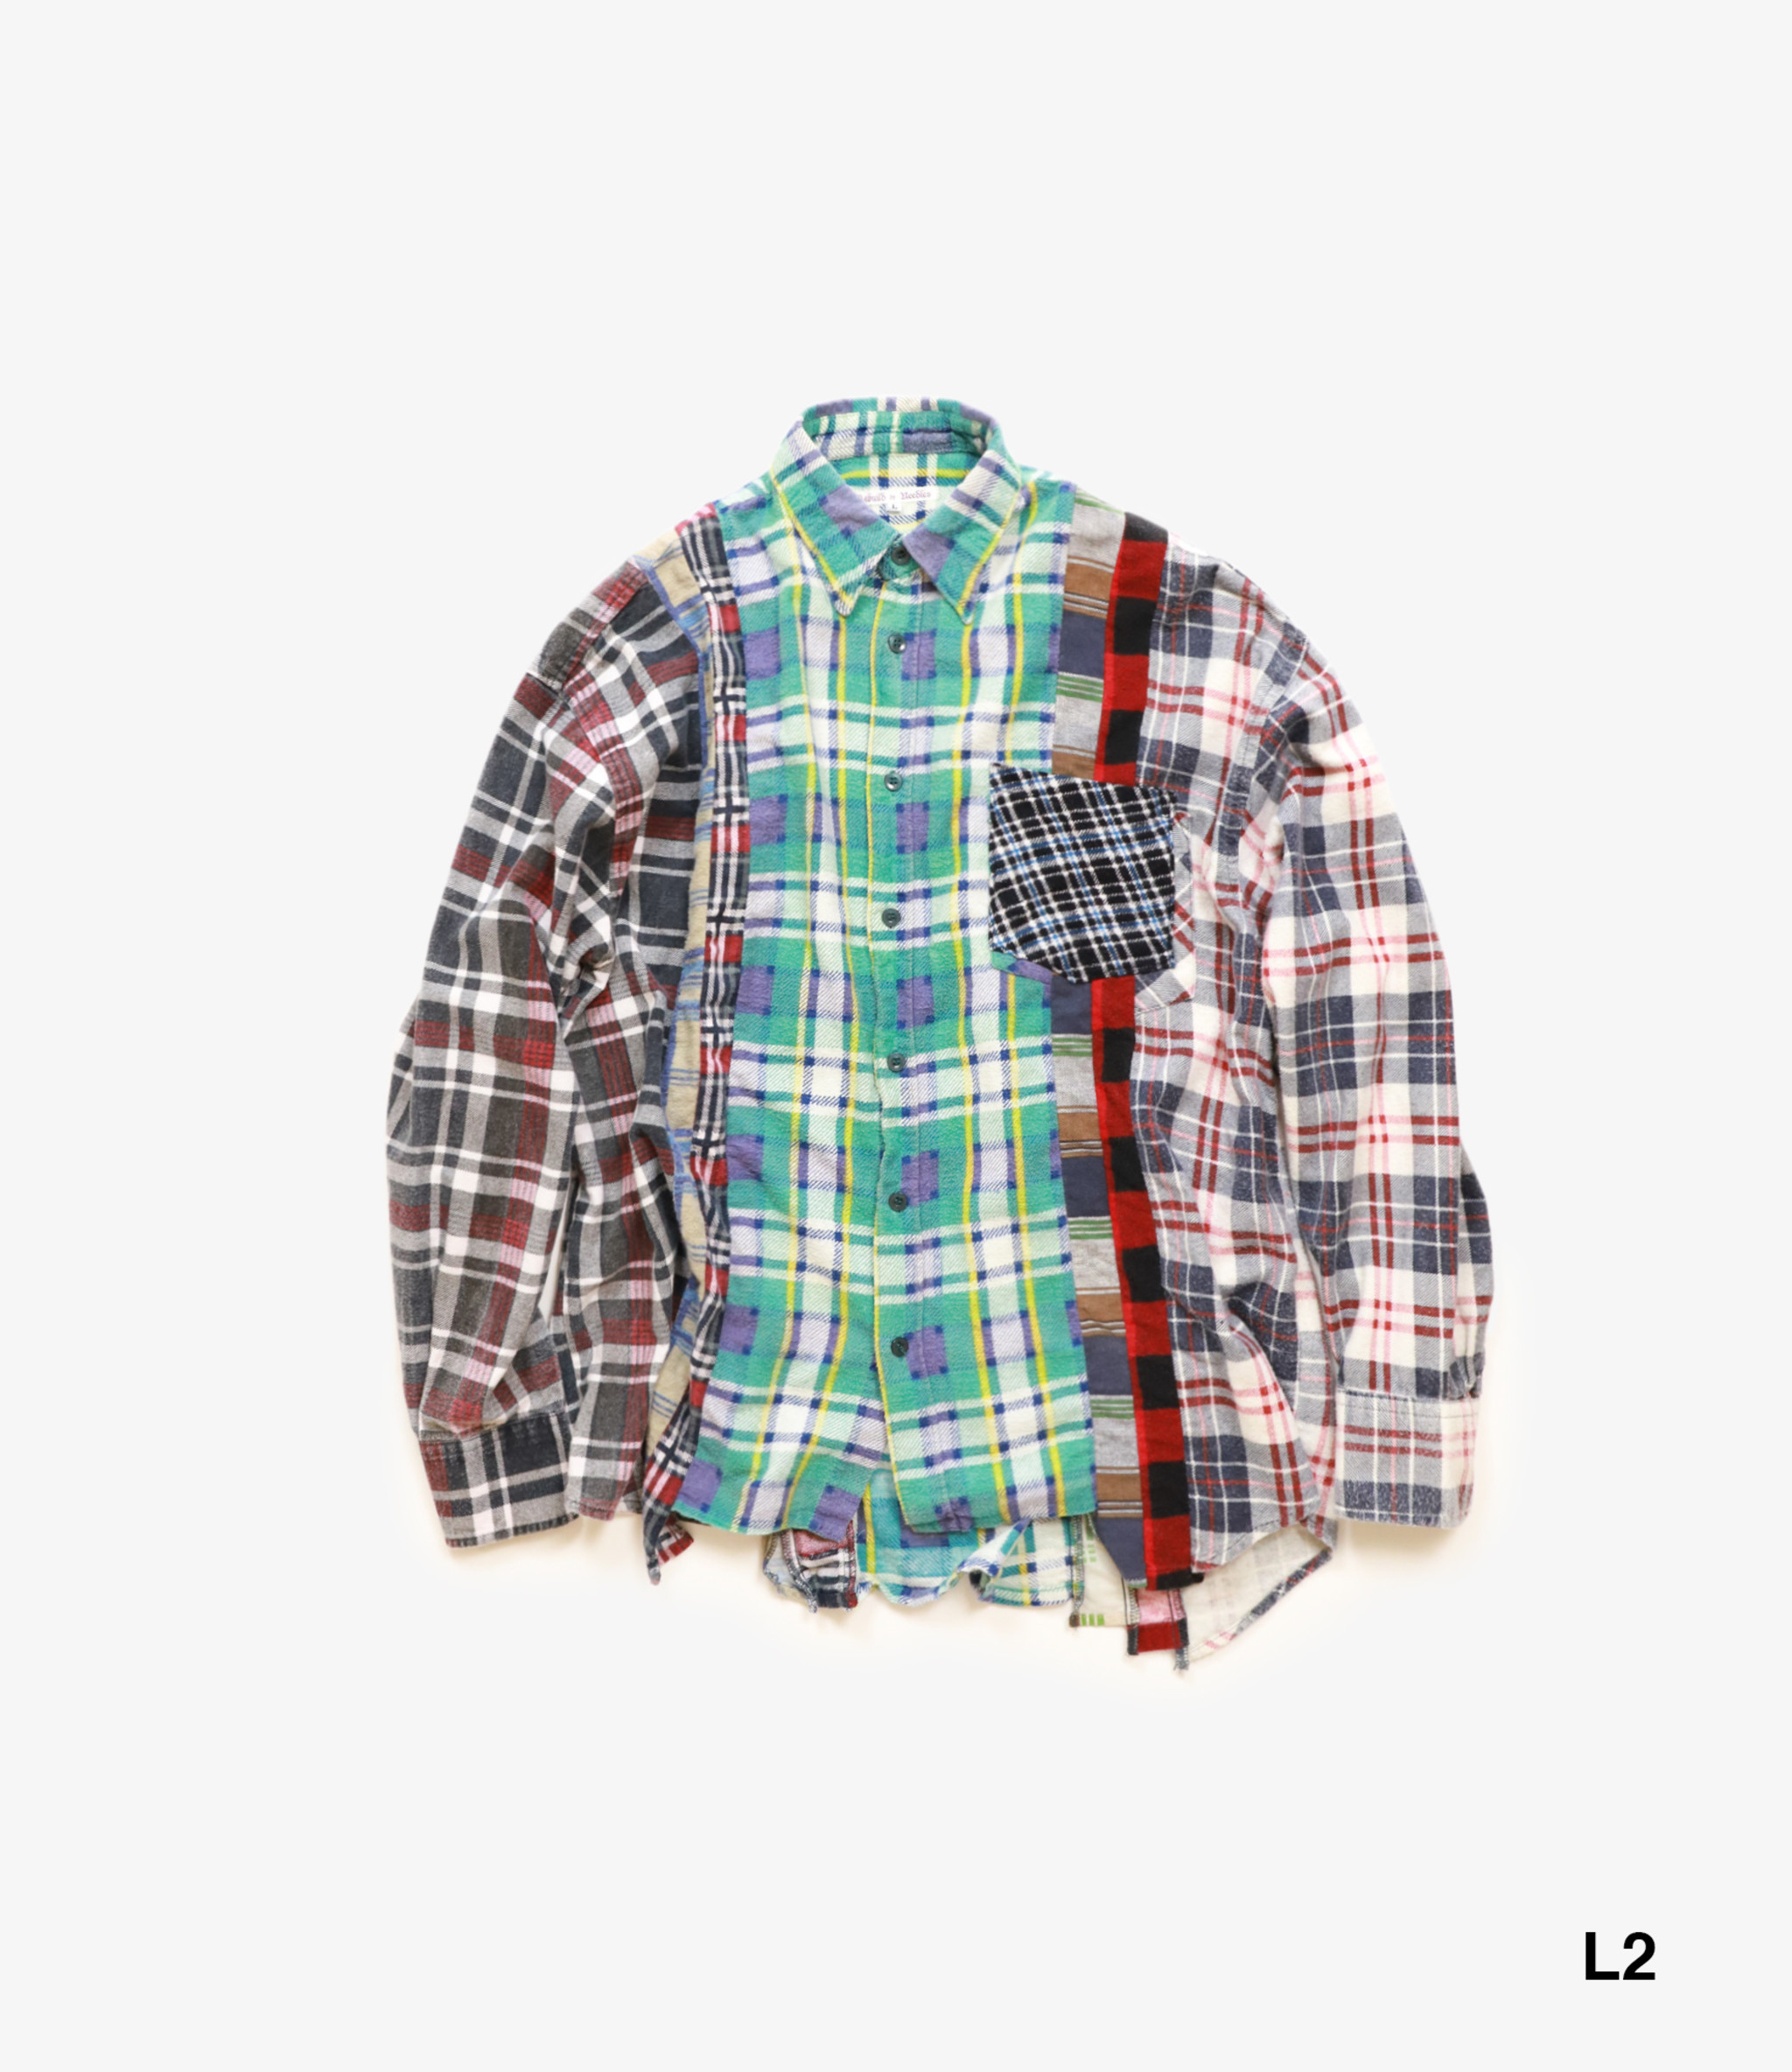 Needles Rebuild by Needles Flannel Shirt - 7 Cuts Shirt